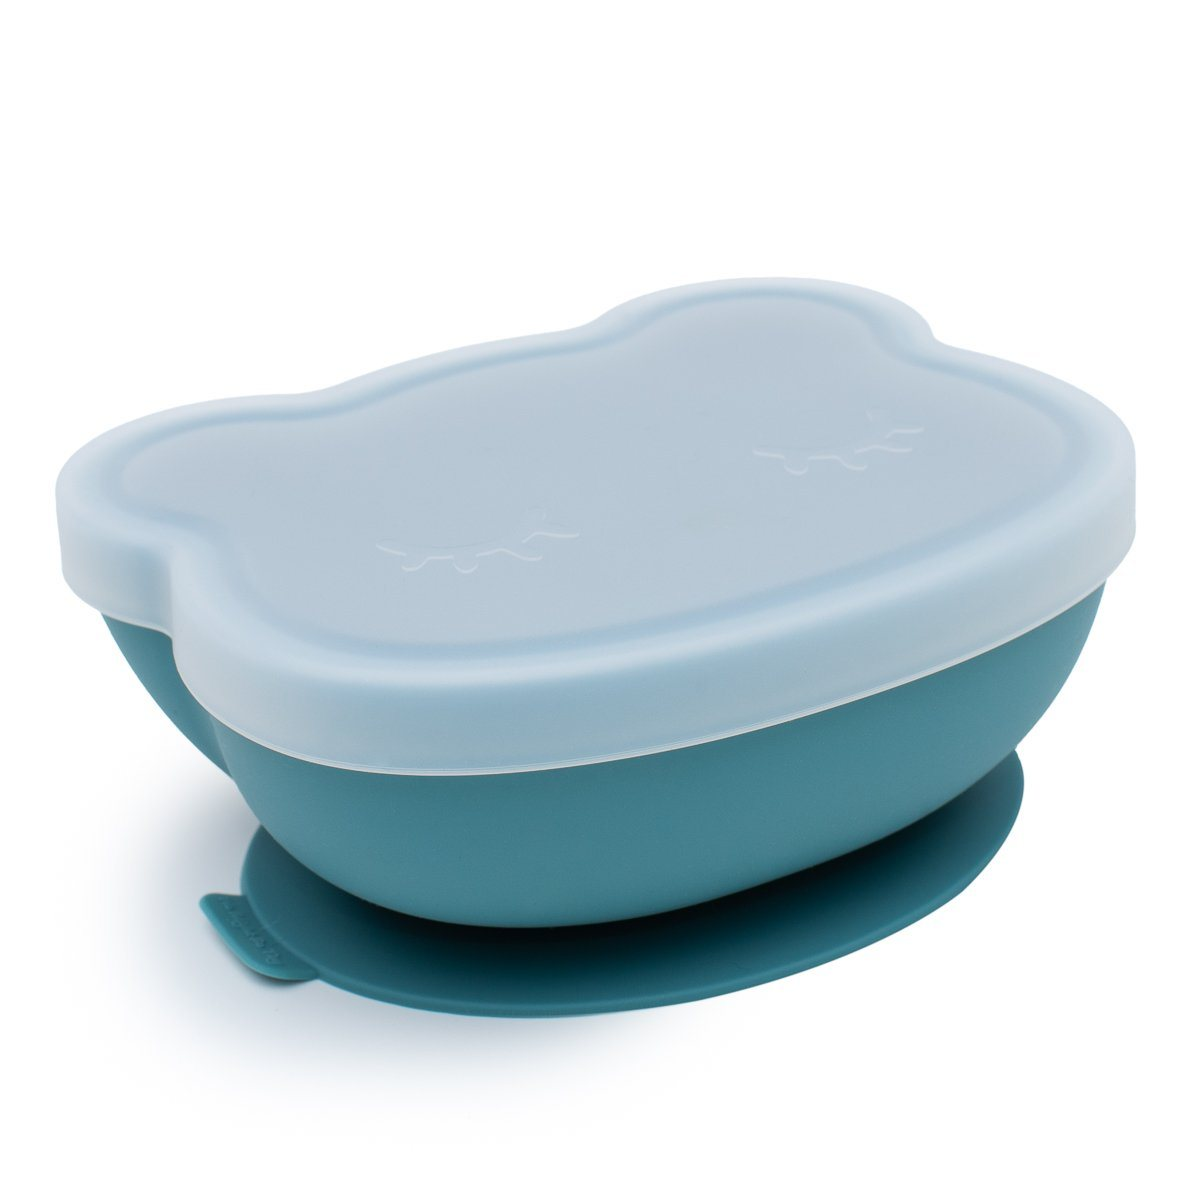 Stickie Bowl (Blue Dusk)